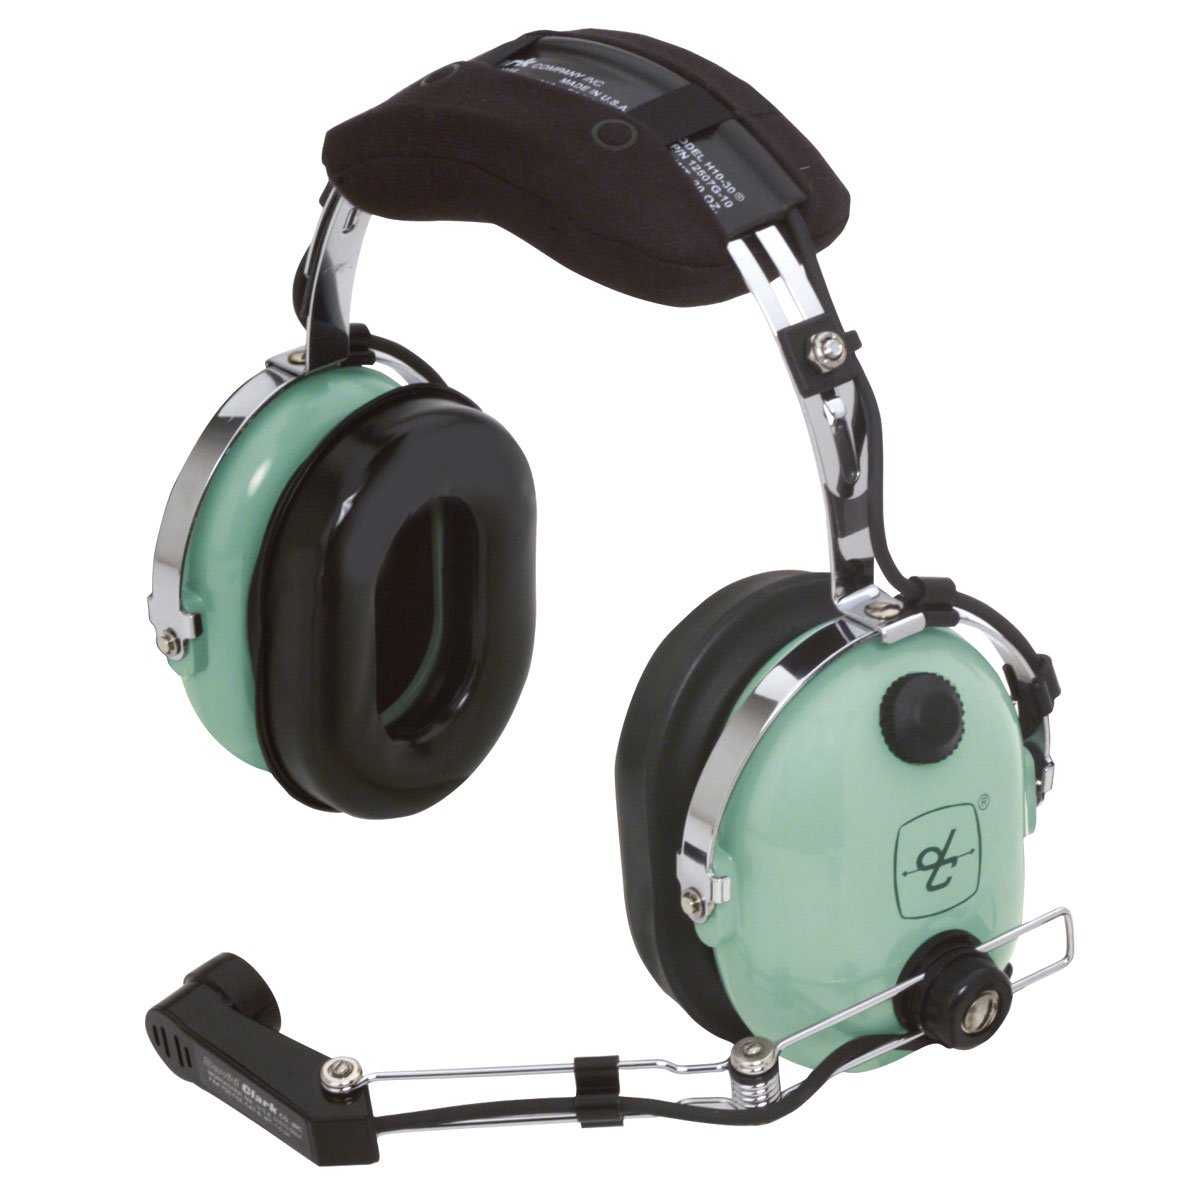 Amazon.com: David Clark H10-30 Aviation Headset: Cell Phones & Accessories